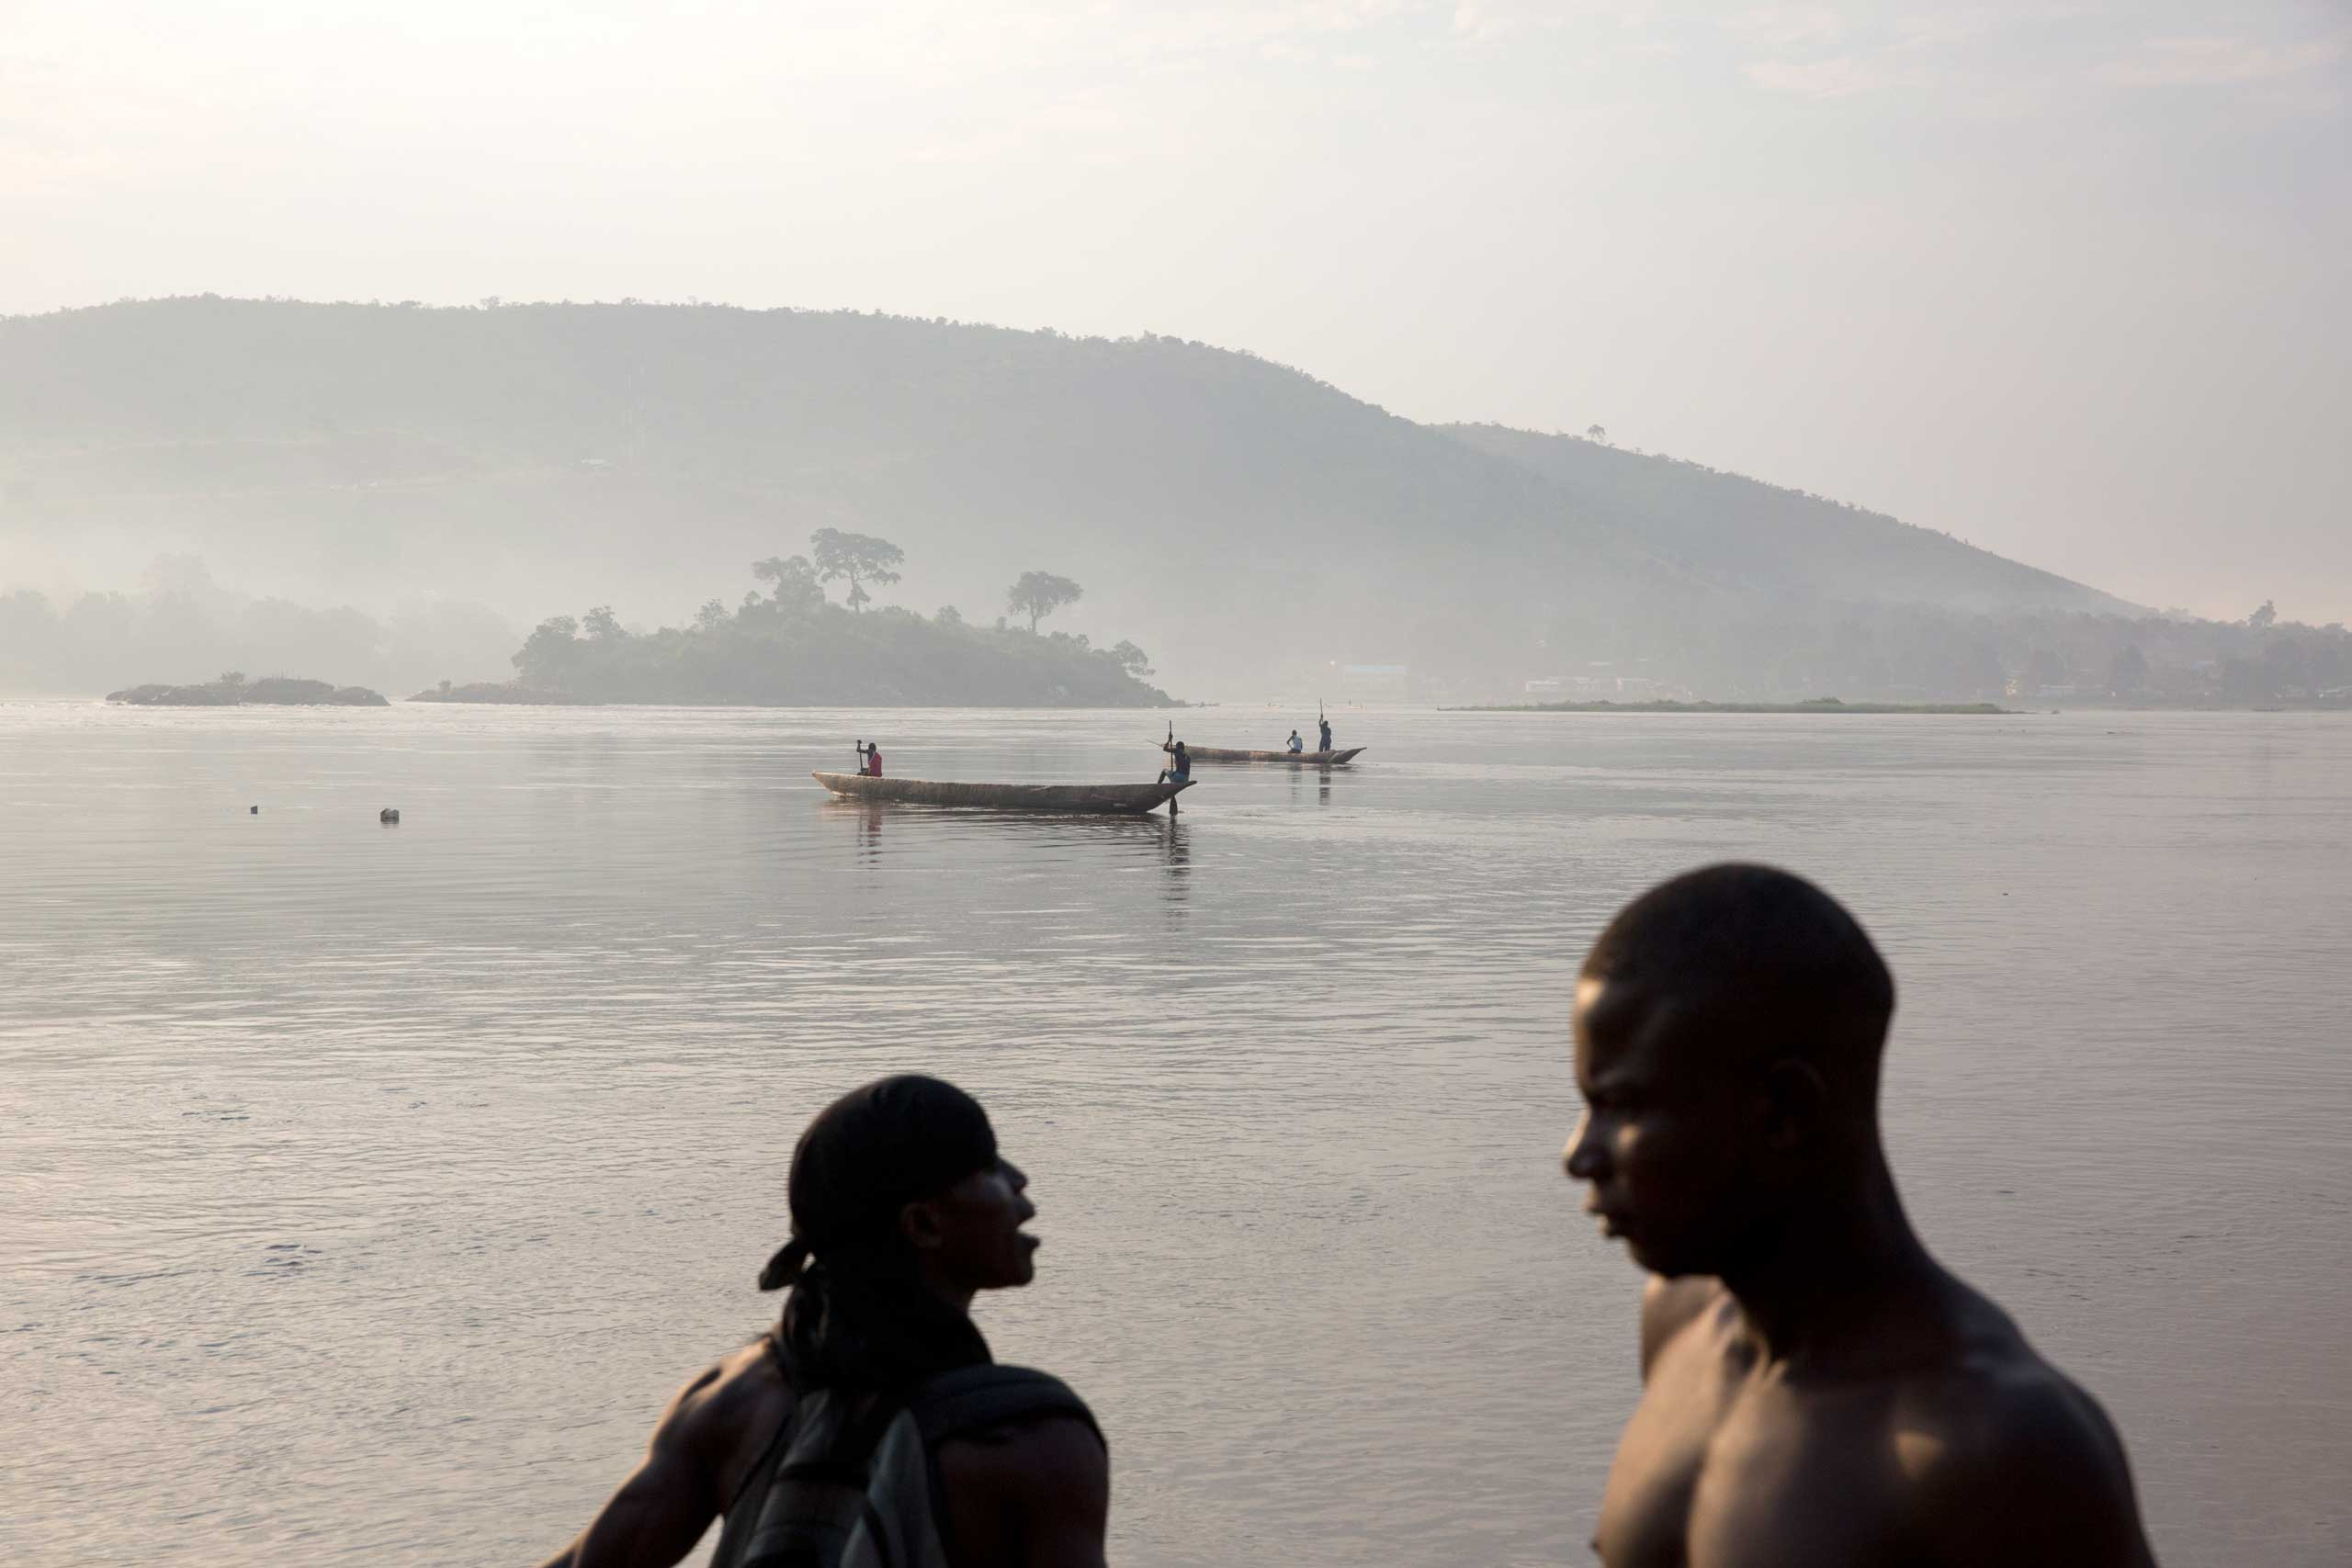 Fishermen on the Oubangui river early in the morning. Hundreds were killed in the capital a year earlier. Bangui, Central African Republic. Dec. 5, 2014.                               Correction: The original version of this caption misstated when hundreds of people were killed in Bangui. It was in 2013.